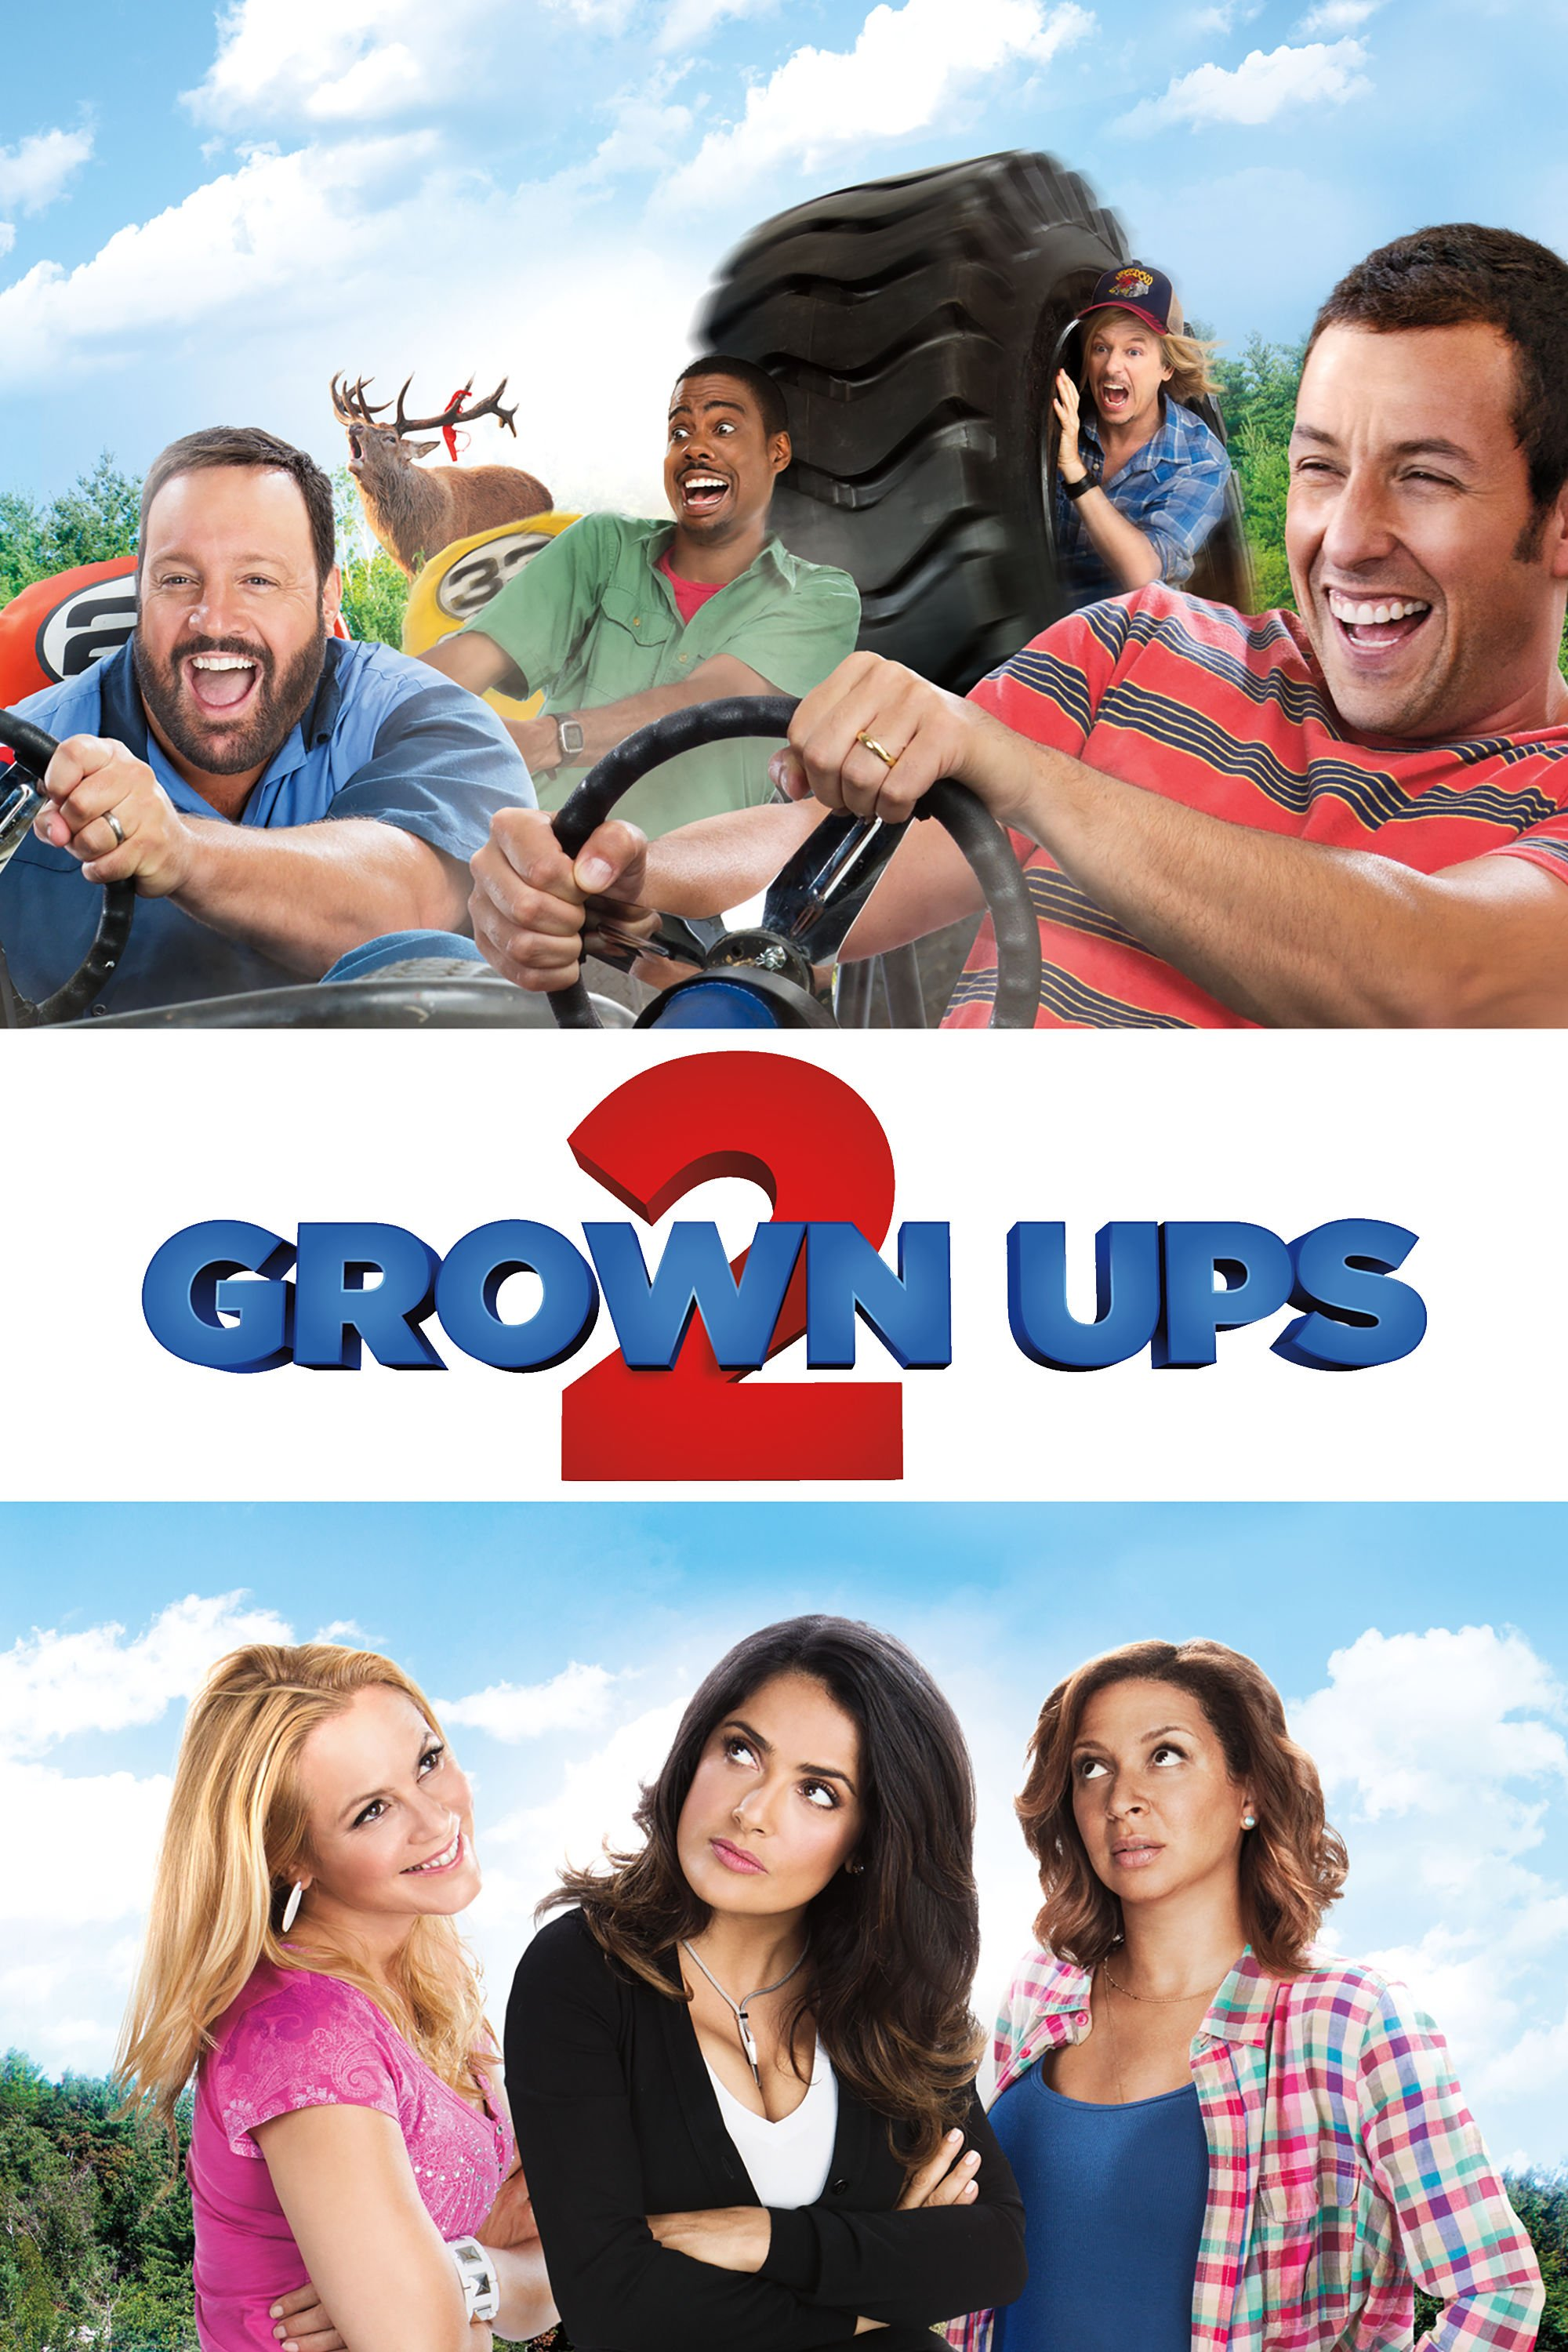 grown-ups-2-filming-locations-poster